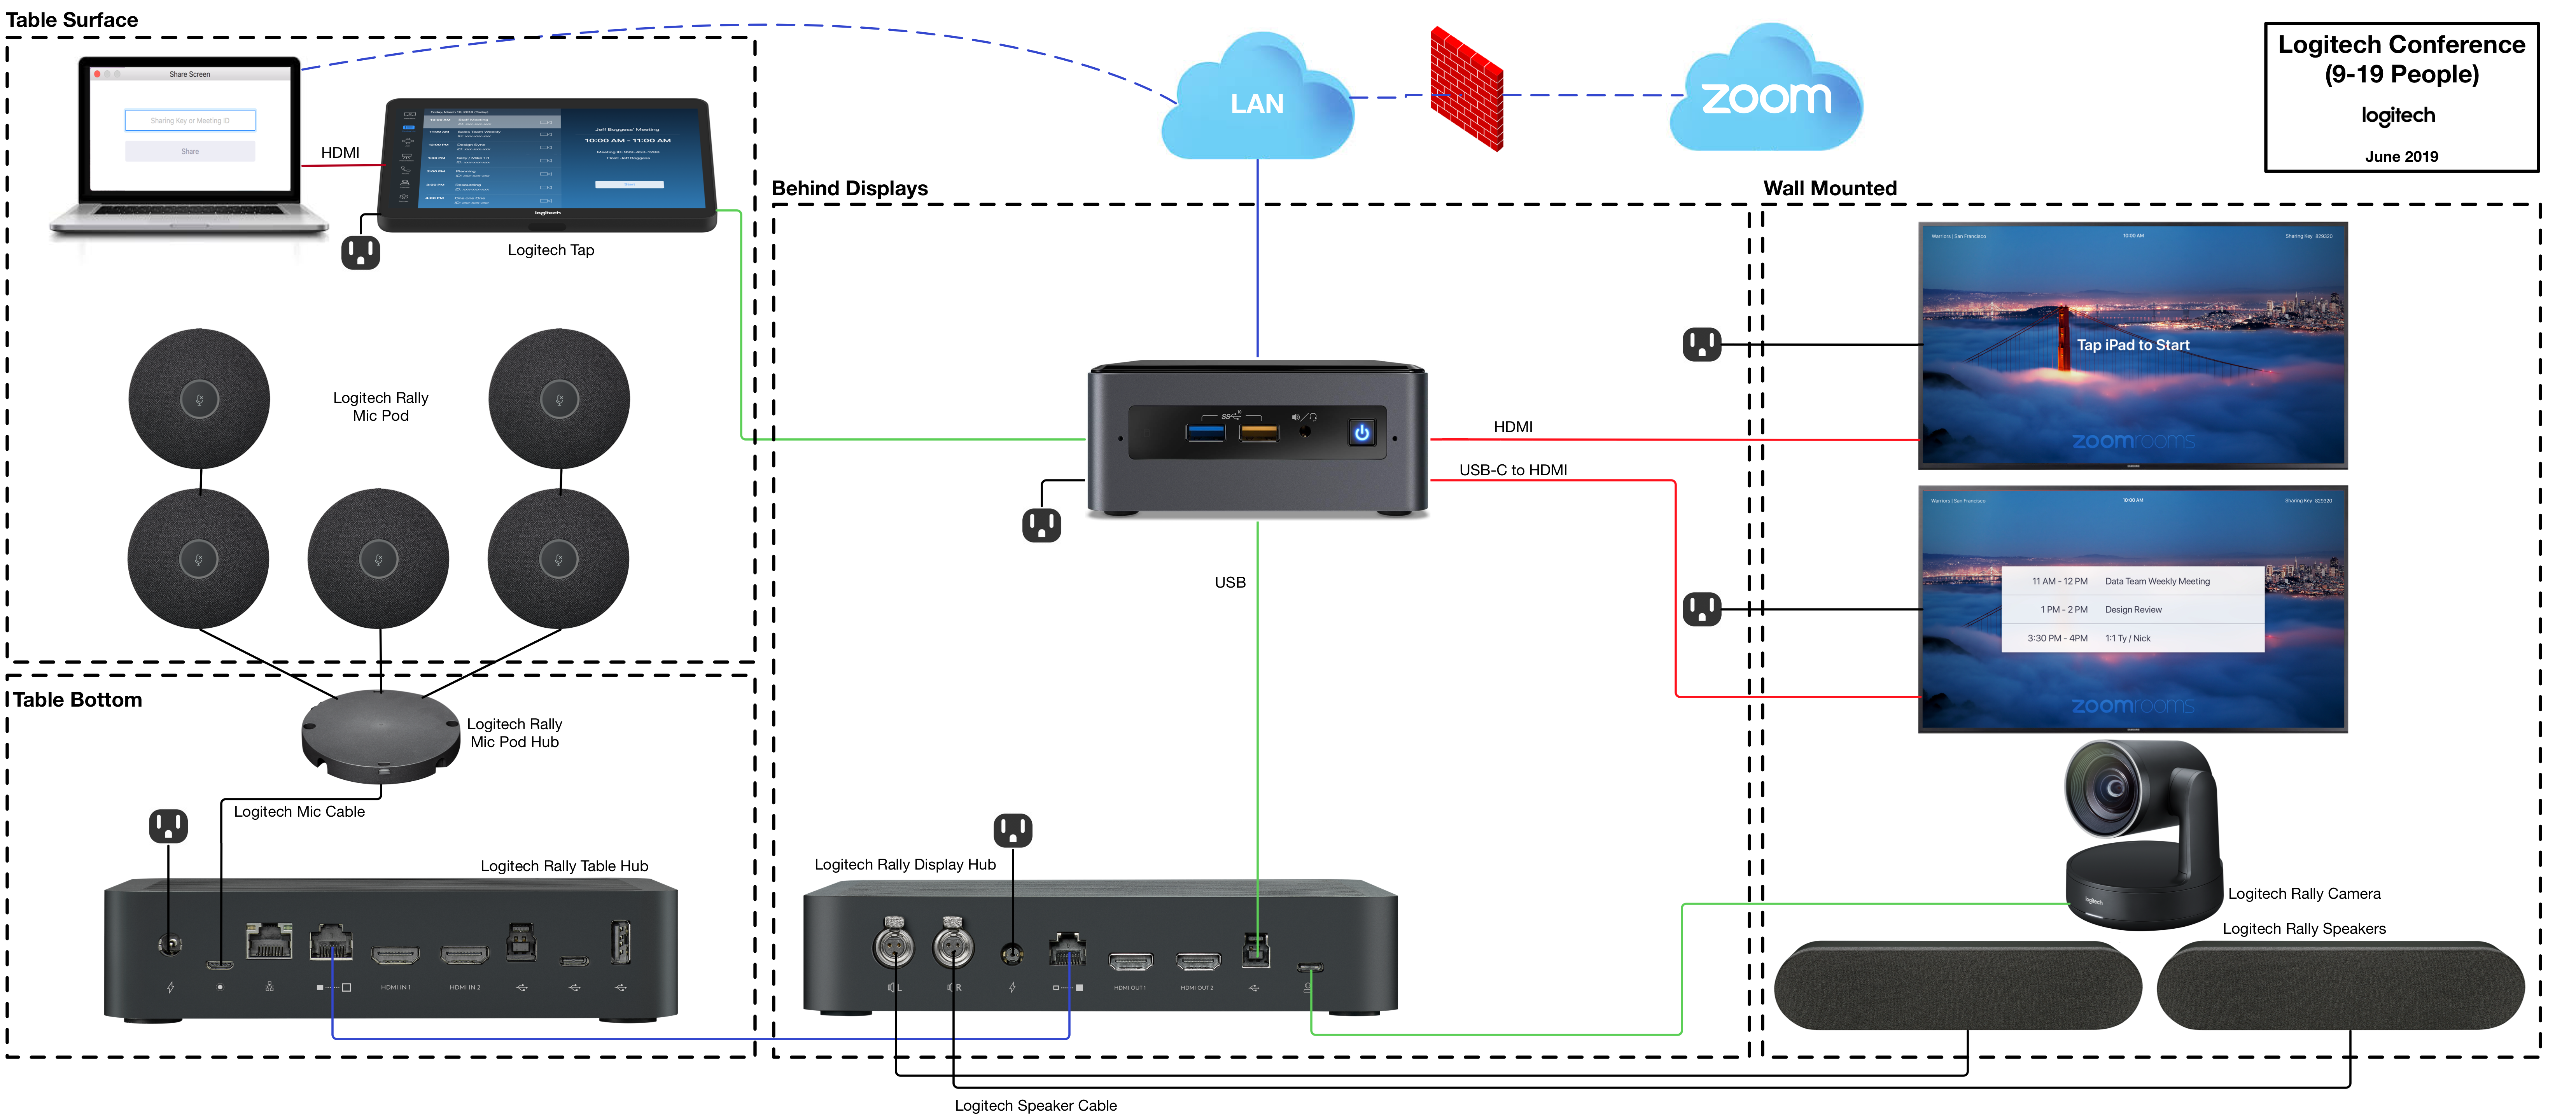 Logitech__TAP__-_Pictorial_Schematic_-_Zoom_Rooms__9-19_People_.png